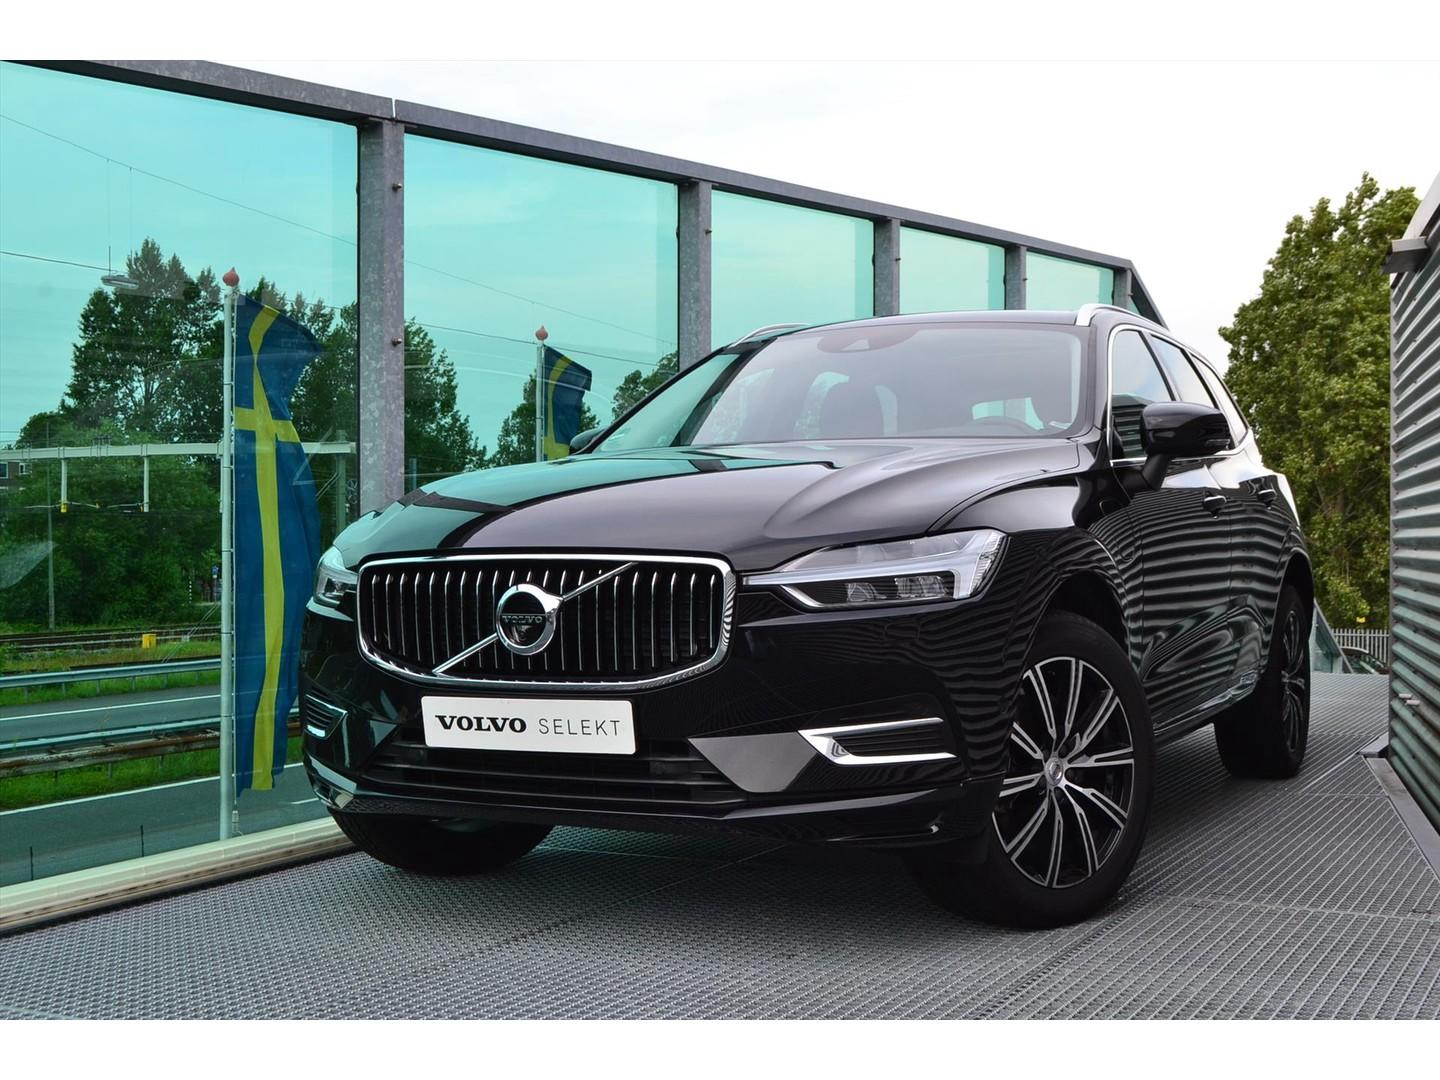 Volvo Xc60 T8 twin engine 390pk geartronic awd plug-in hybrid inscription